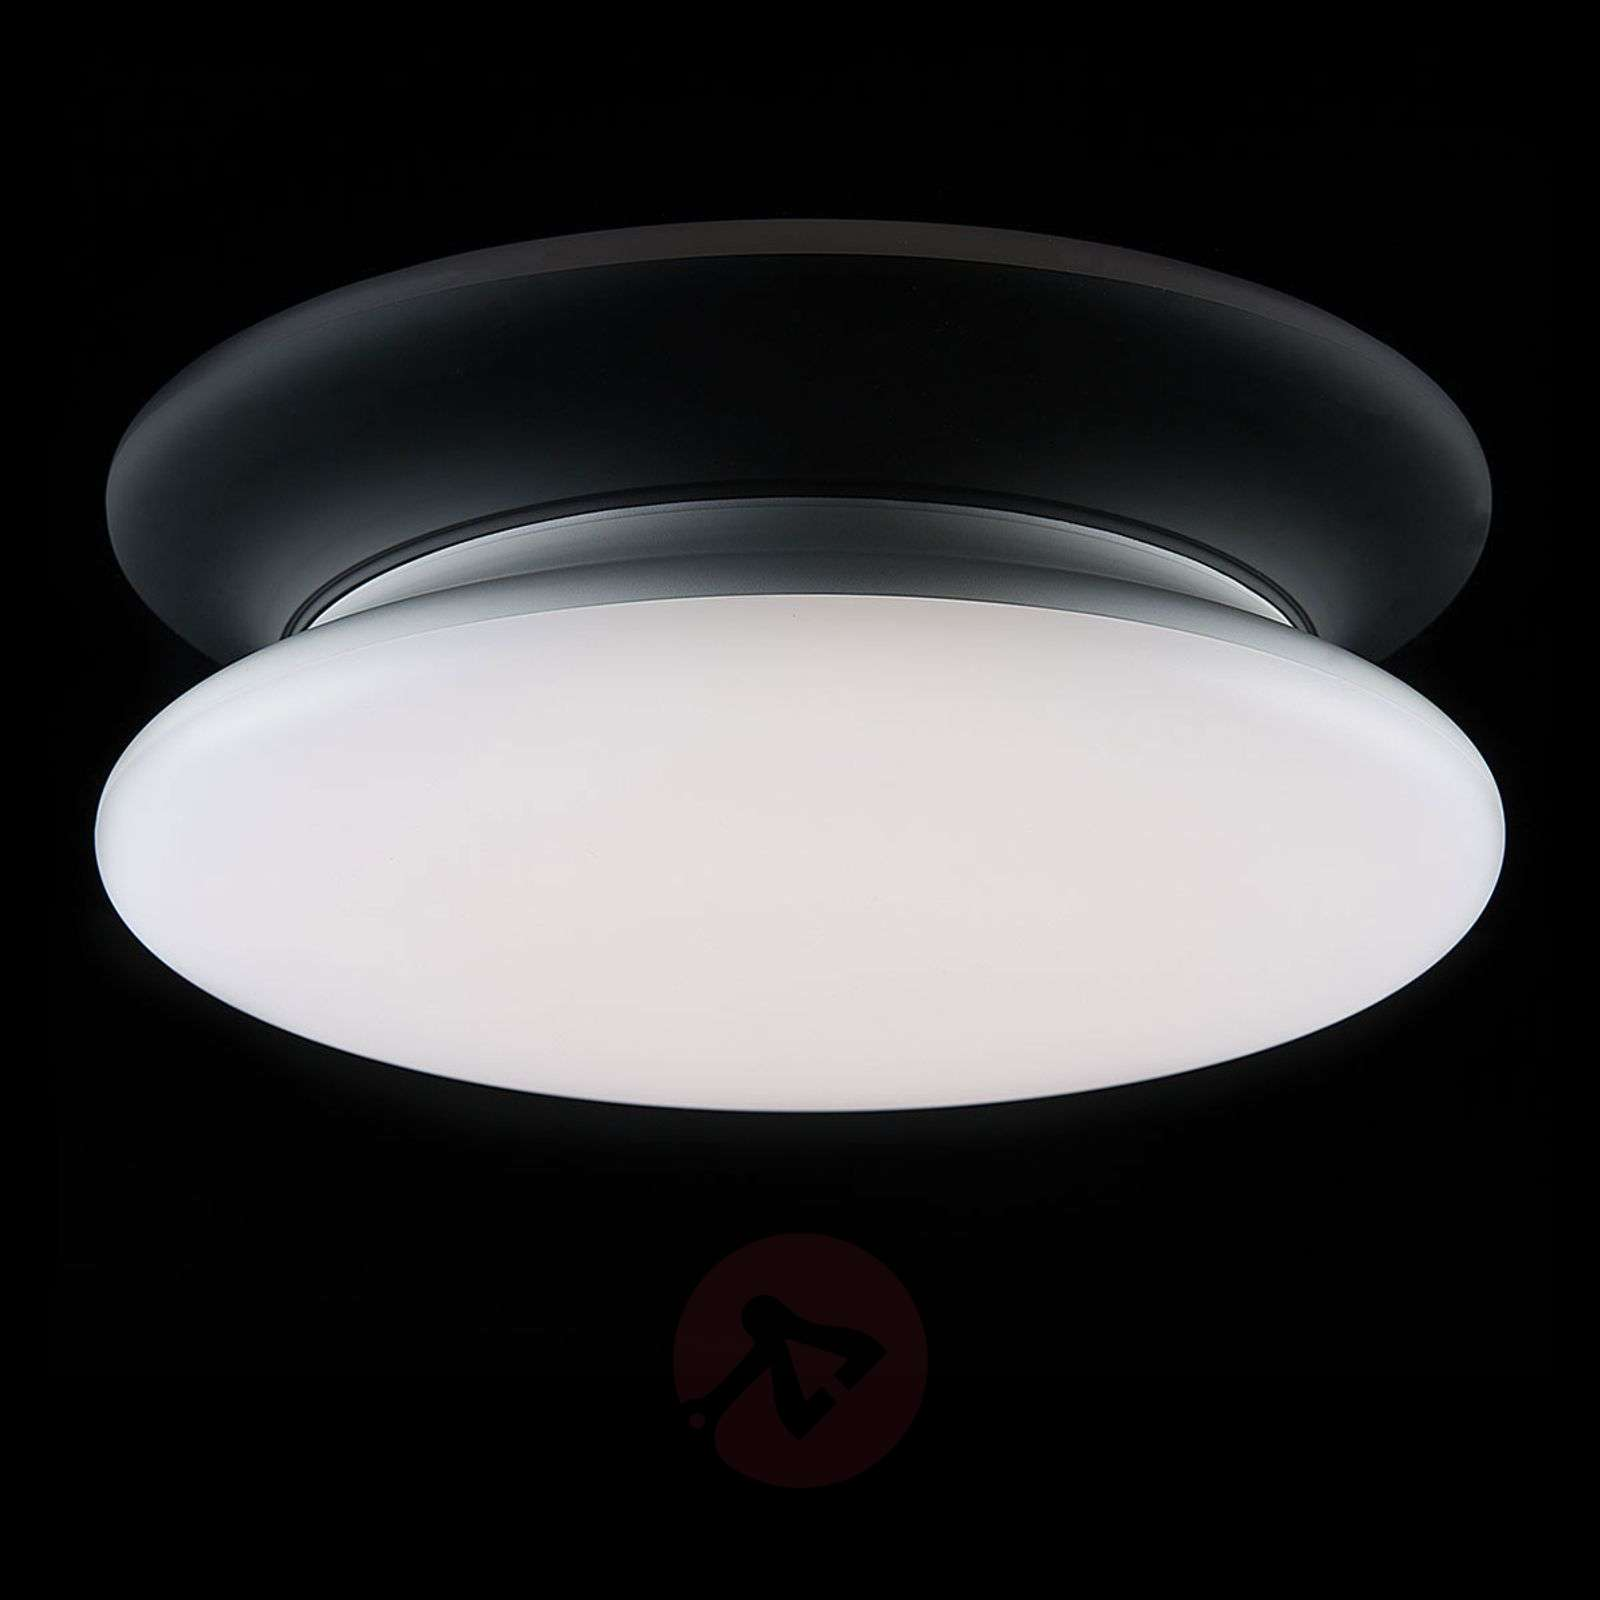 SLC lampa sufitowa LED IP54 Ø 30 cm 4 000 K